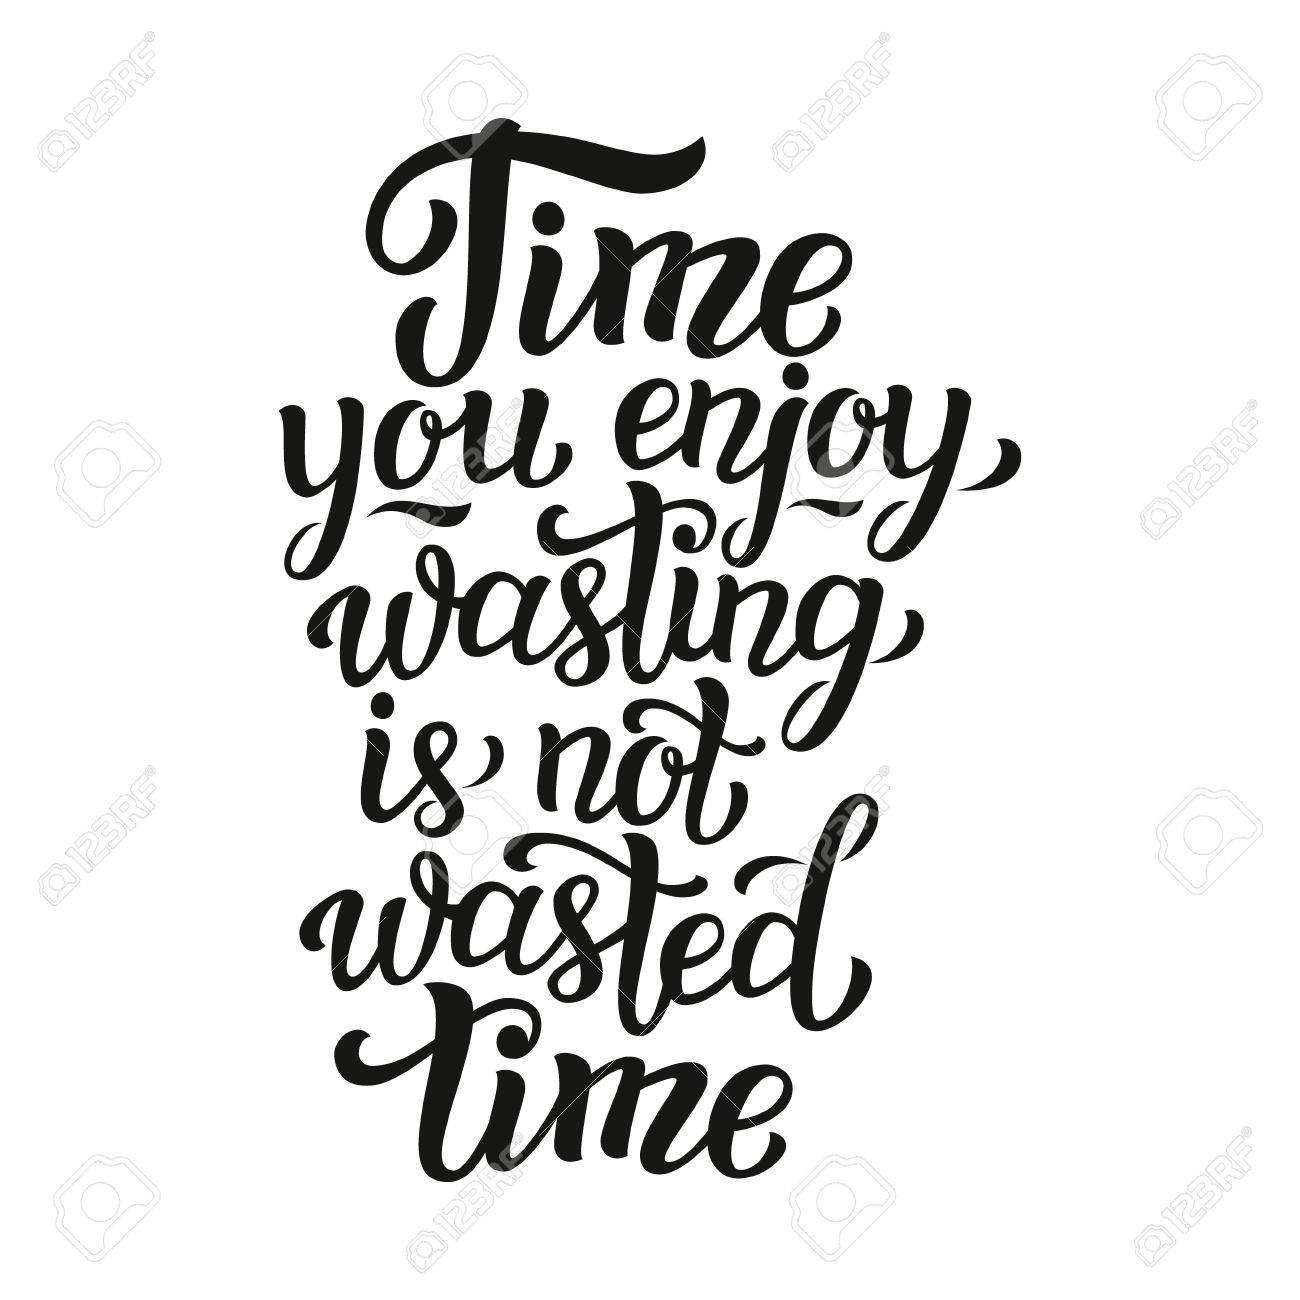 Time You Enjoy Wasting Is Not Wasted Time Lettering Typography Royalty Free Cliparts Vectors And Stock Illustration Image 61407634